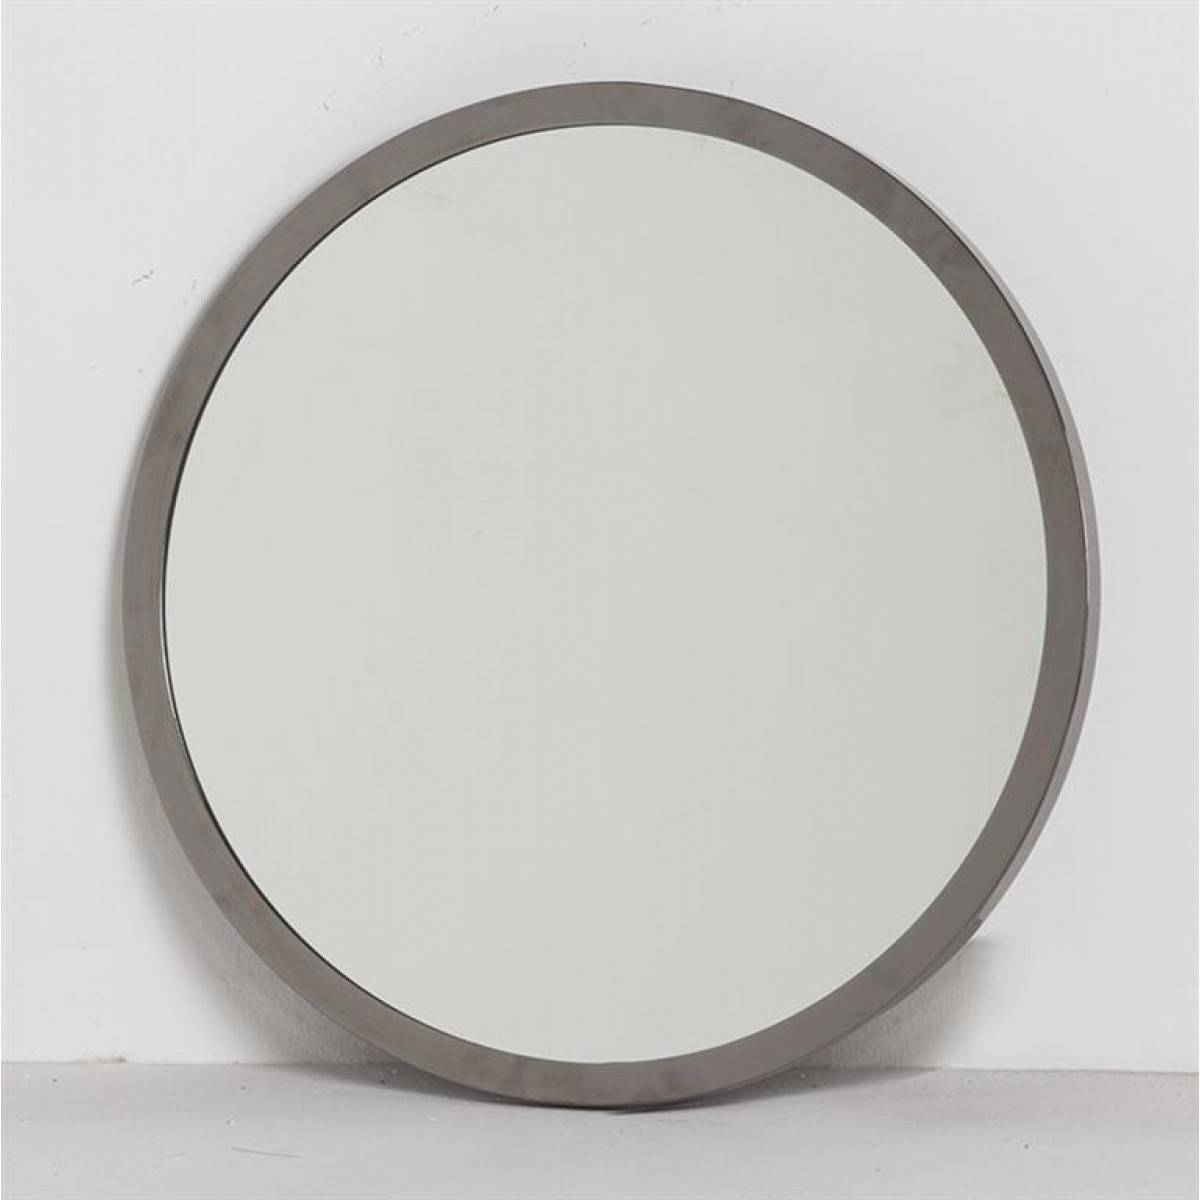 Charles Round Mirror Grey Metal Large - Mirrors - Accessories in Large Black Round Mirrors (Image 5 of 15)